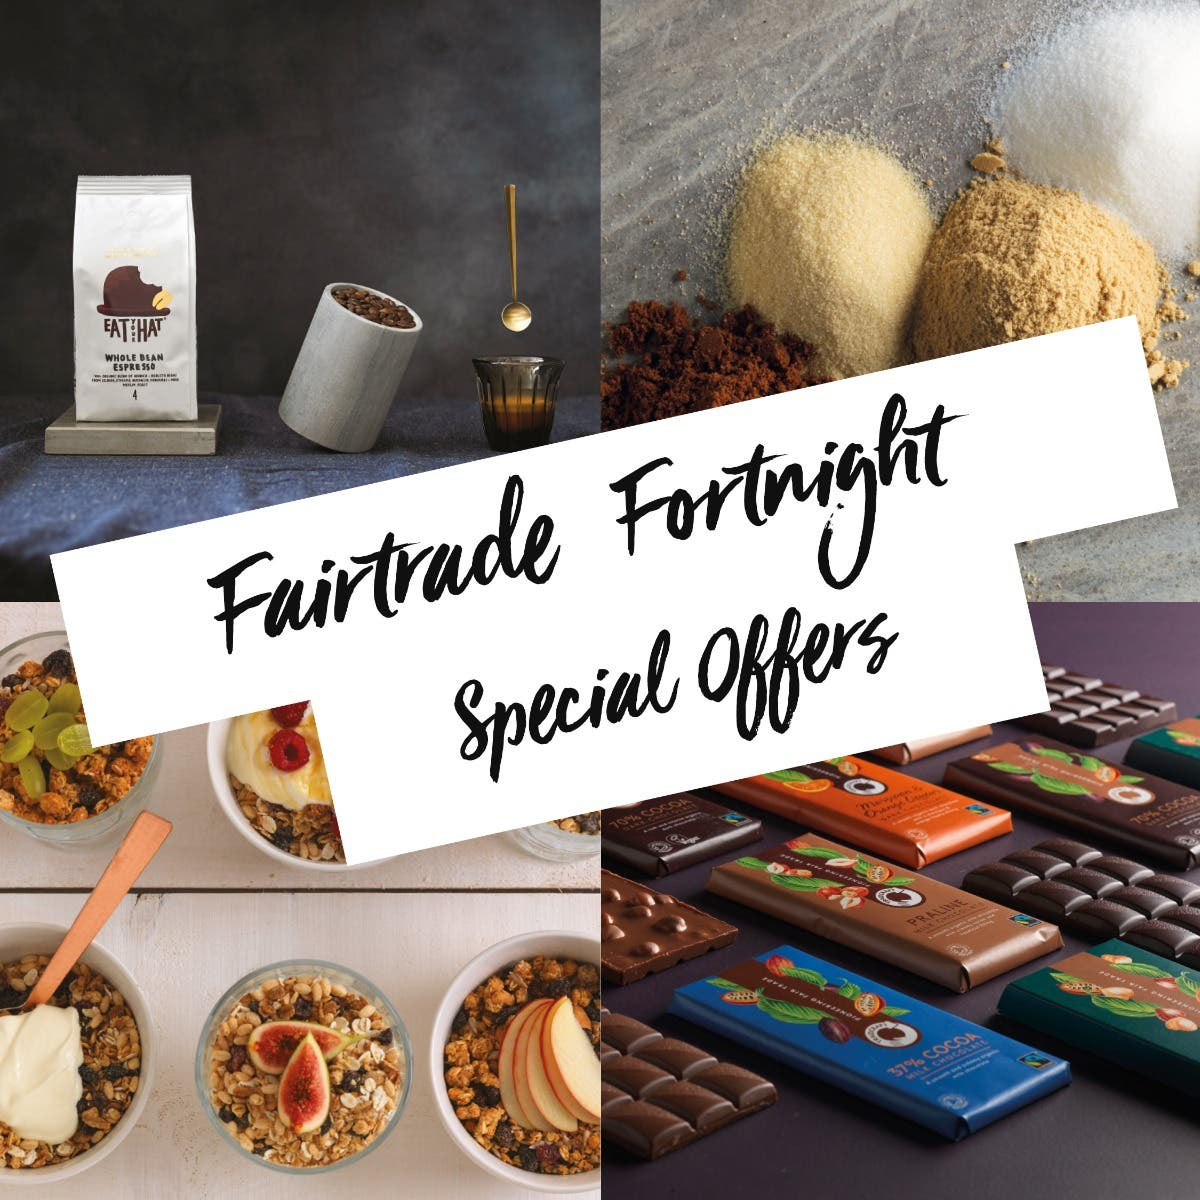 Fairtrade Fortnight special offers